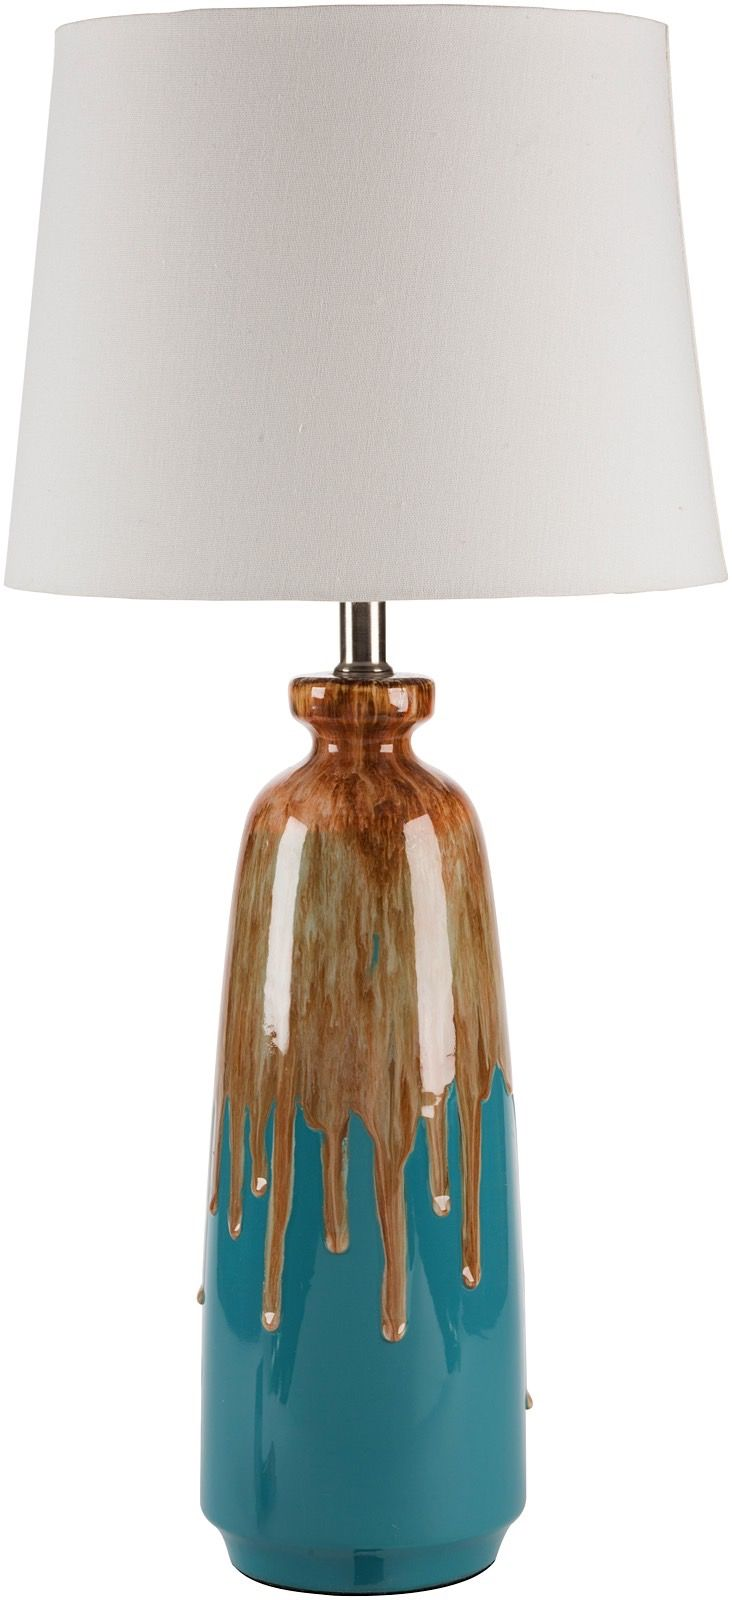 surya lagoon contemporary table lamp